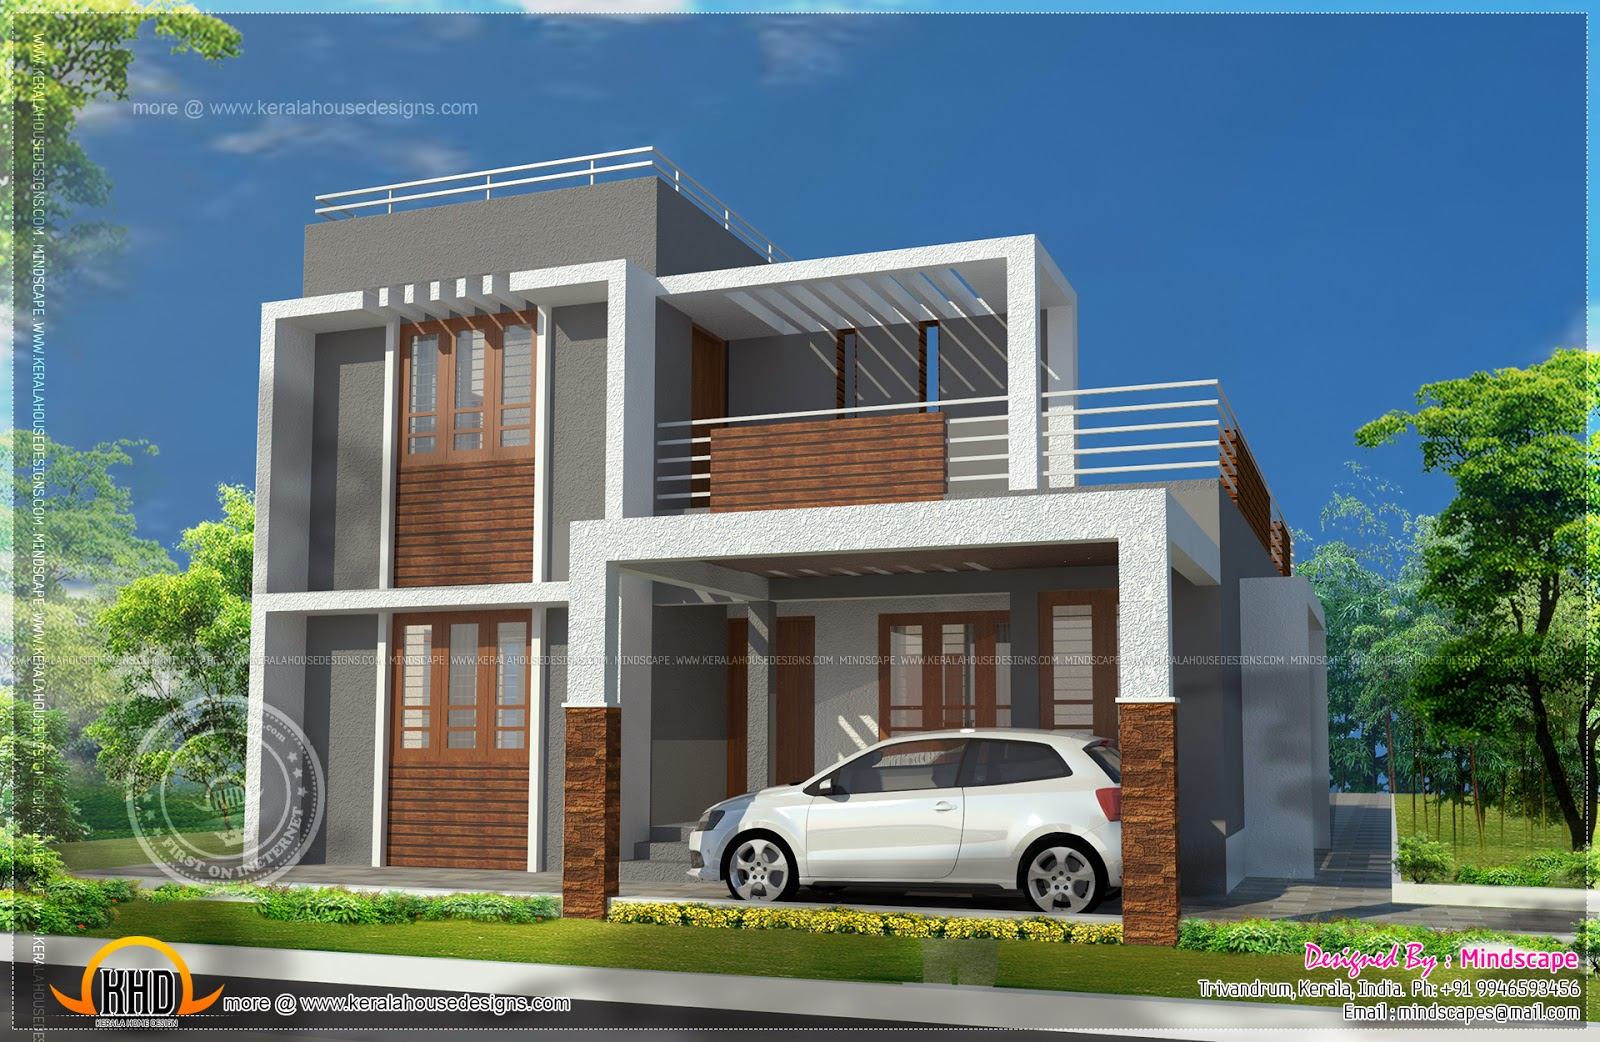 Small double storied contemporary house plan kerala home for Small contemporary house plans in kerala